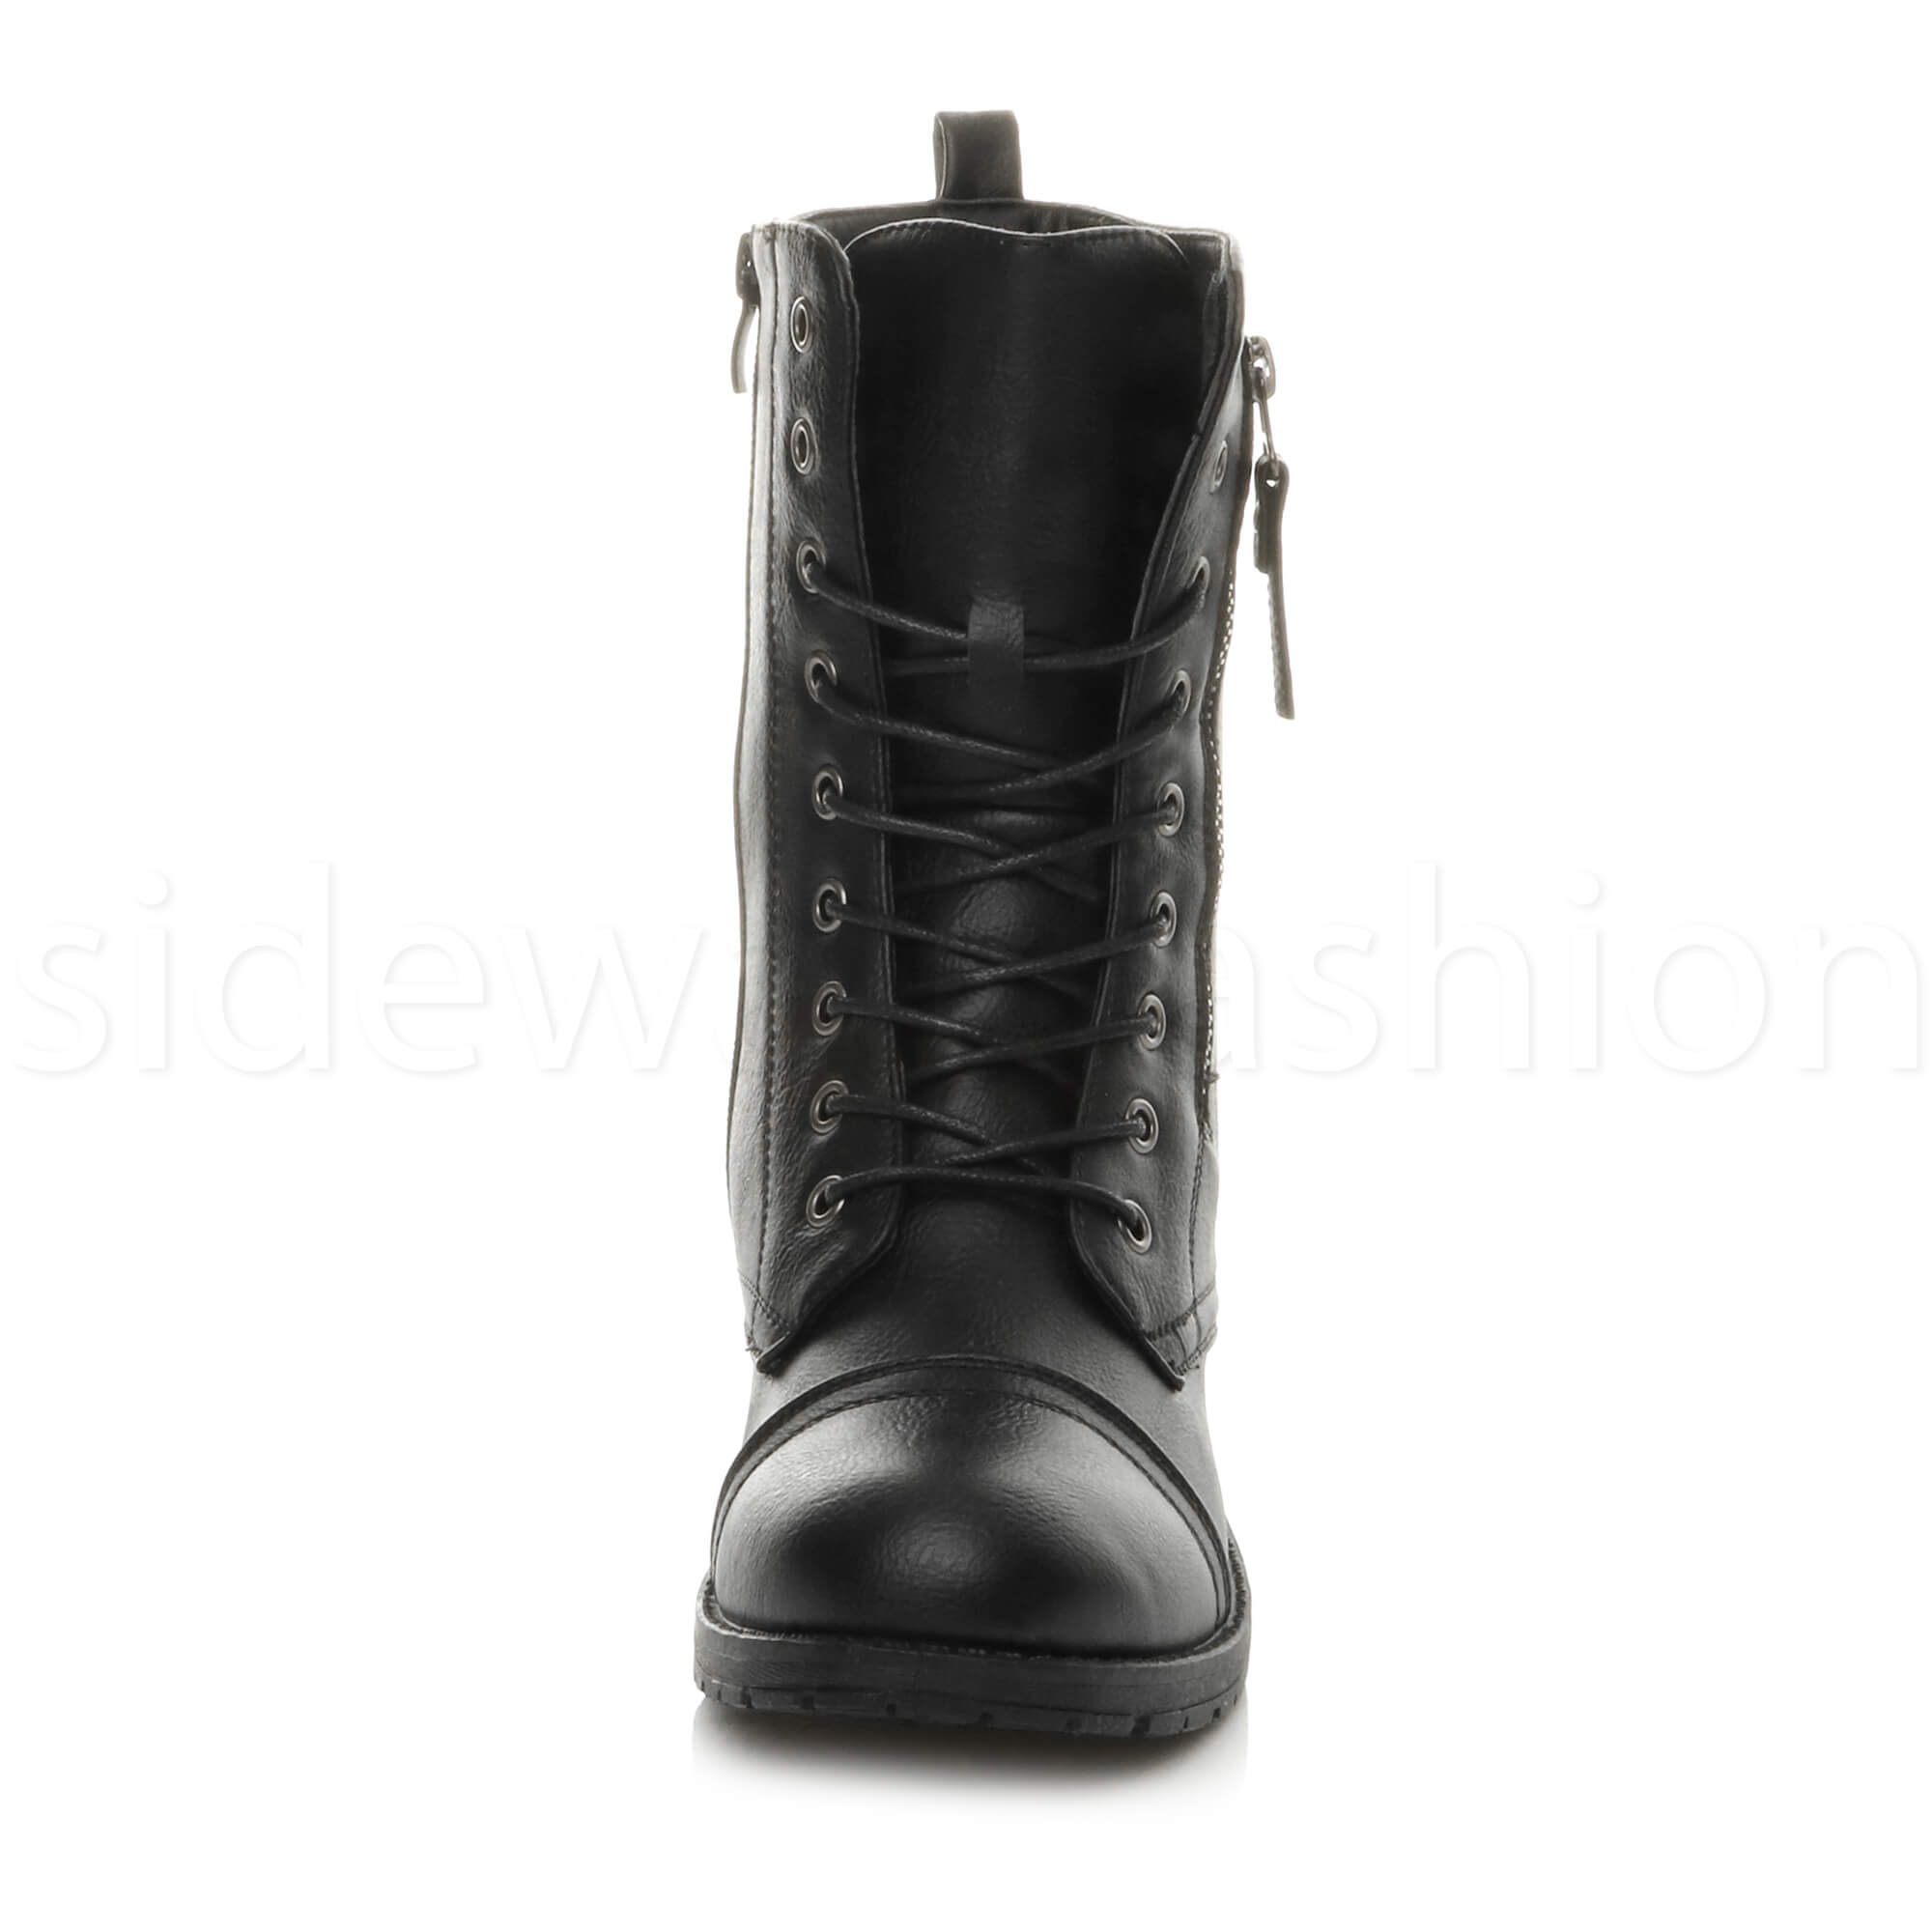 Womens-ladies-low-heel-flat-lace-up-zip-combat-biker-military-ankle-boots-size thumbnail 7